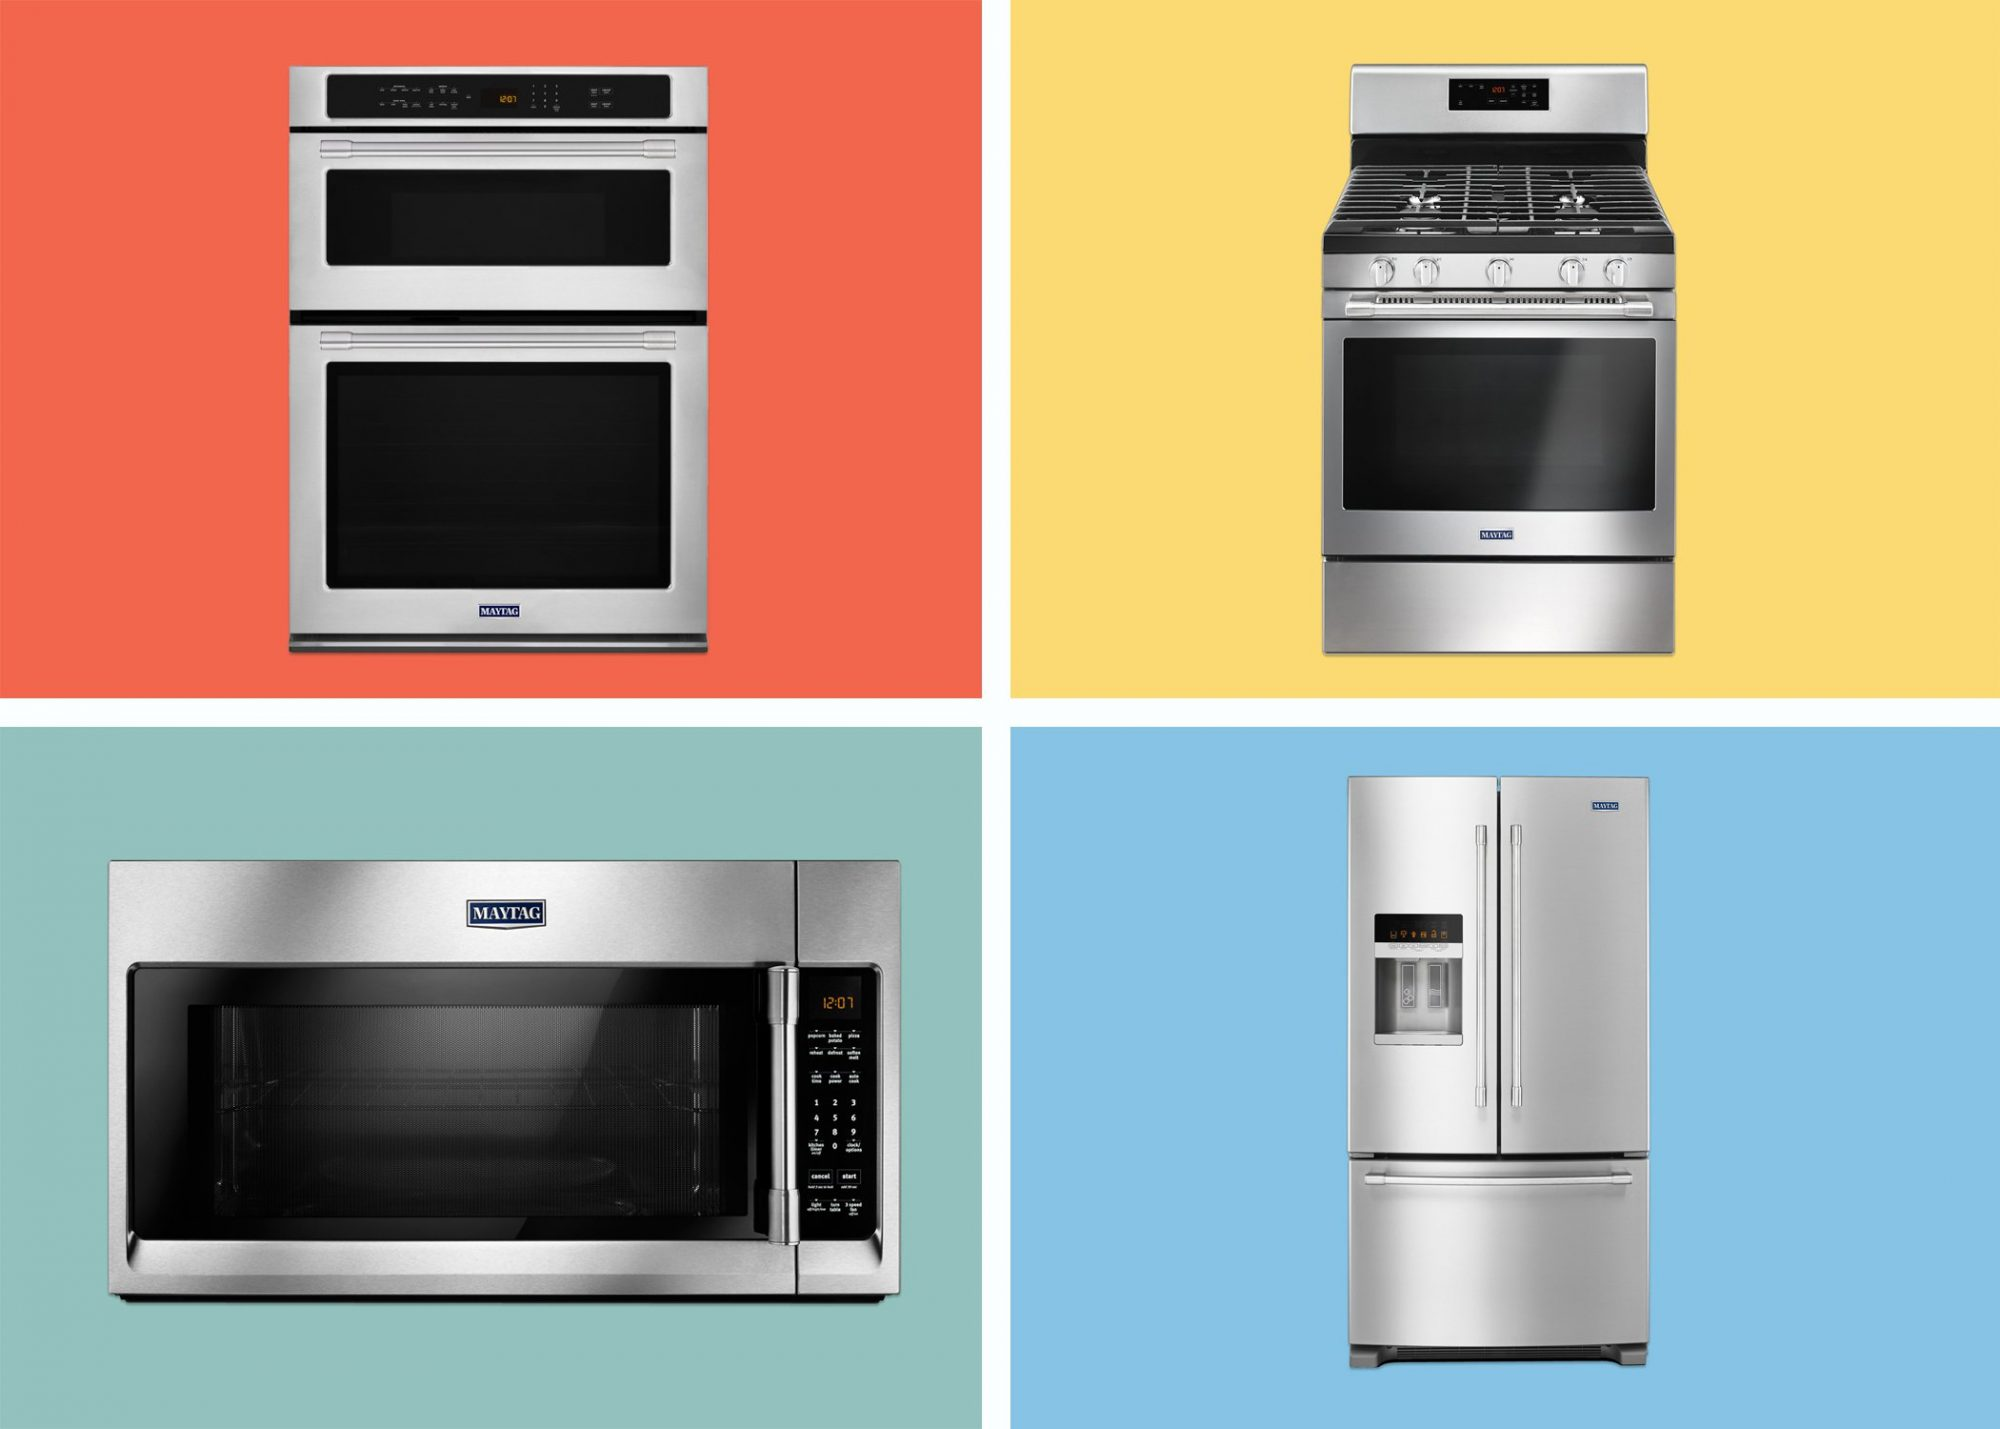 Here's How to Get Up to $700 Off Maytag Home Appliances This Month